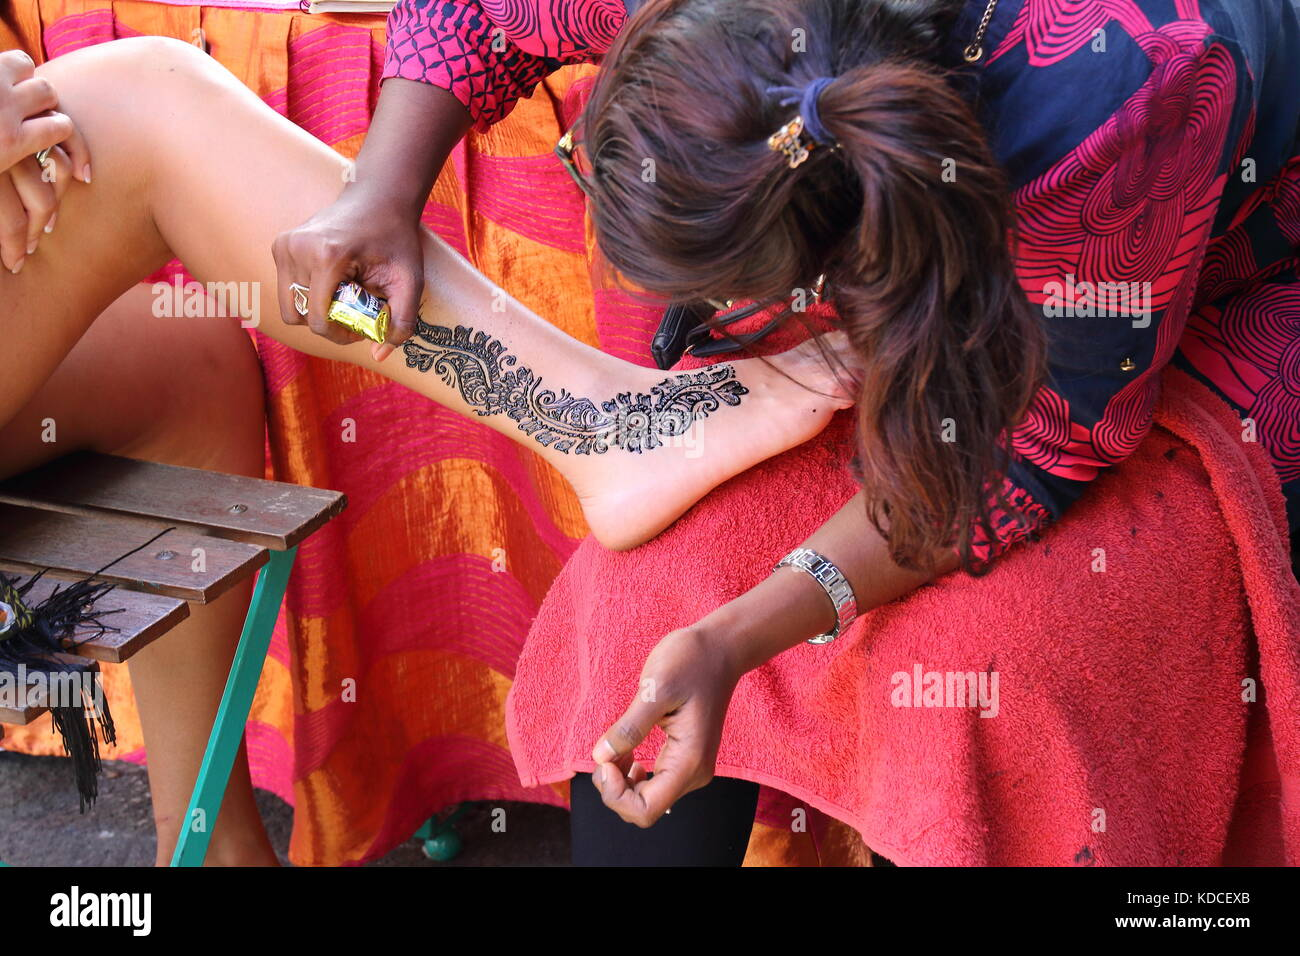 Body Art Mehndi High Resolution Stock Photography And Images Alamy